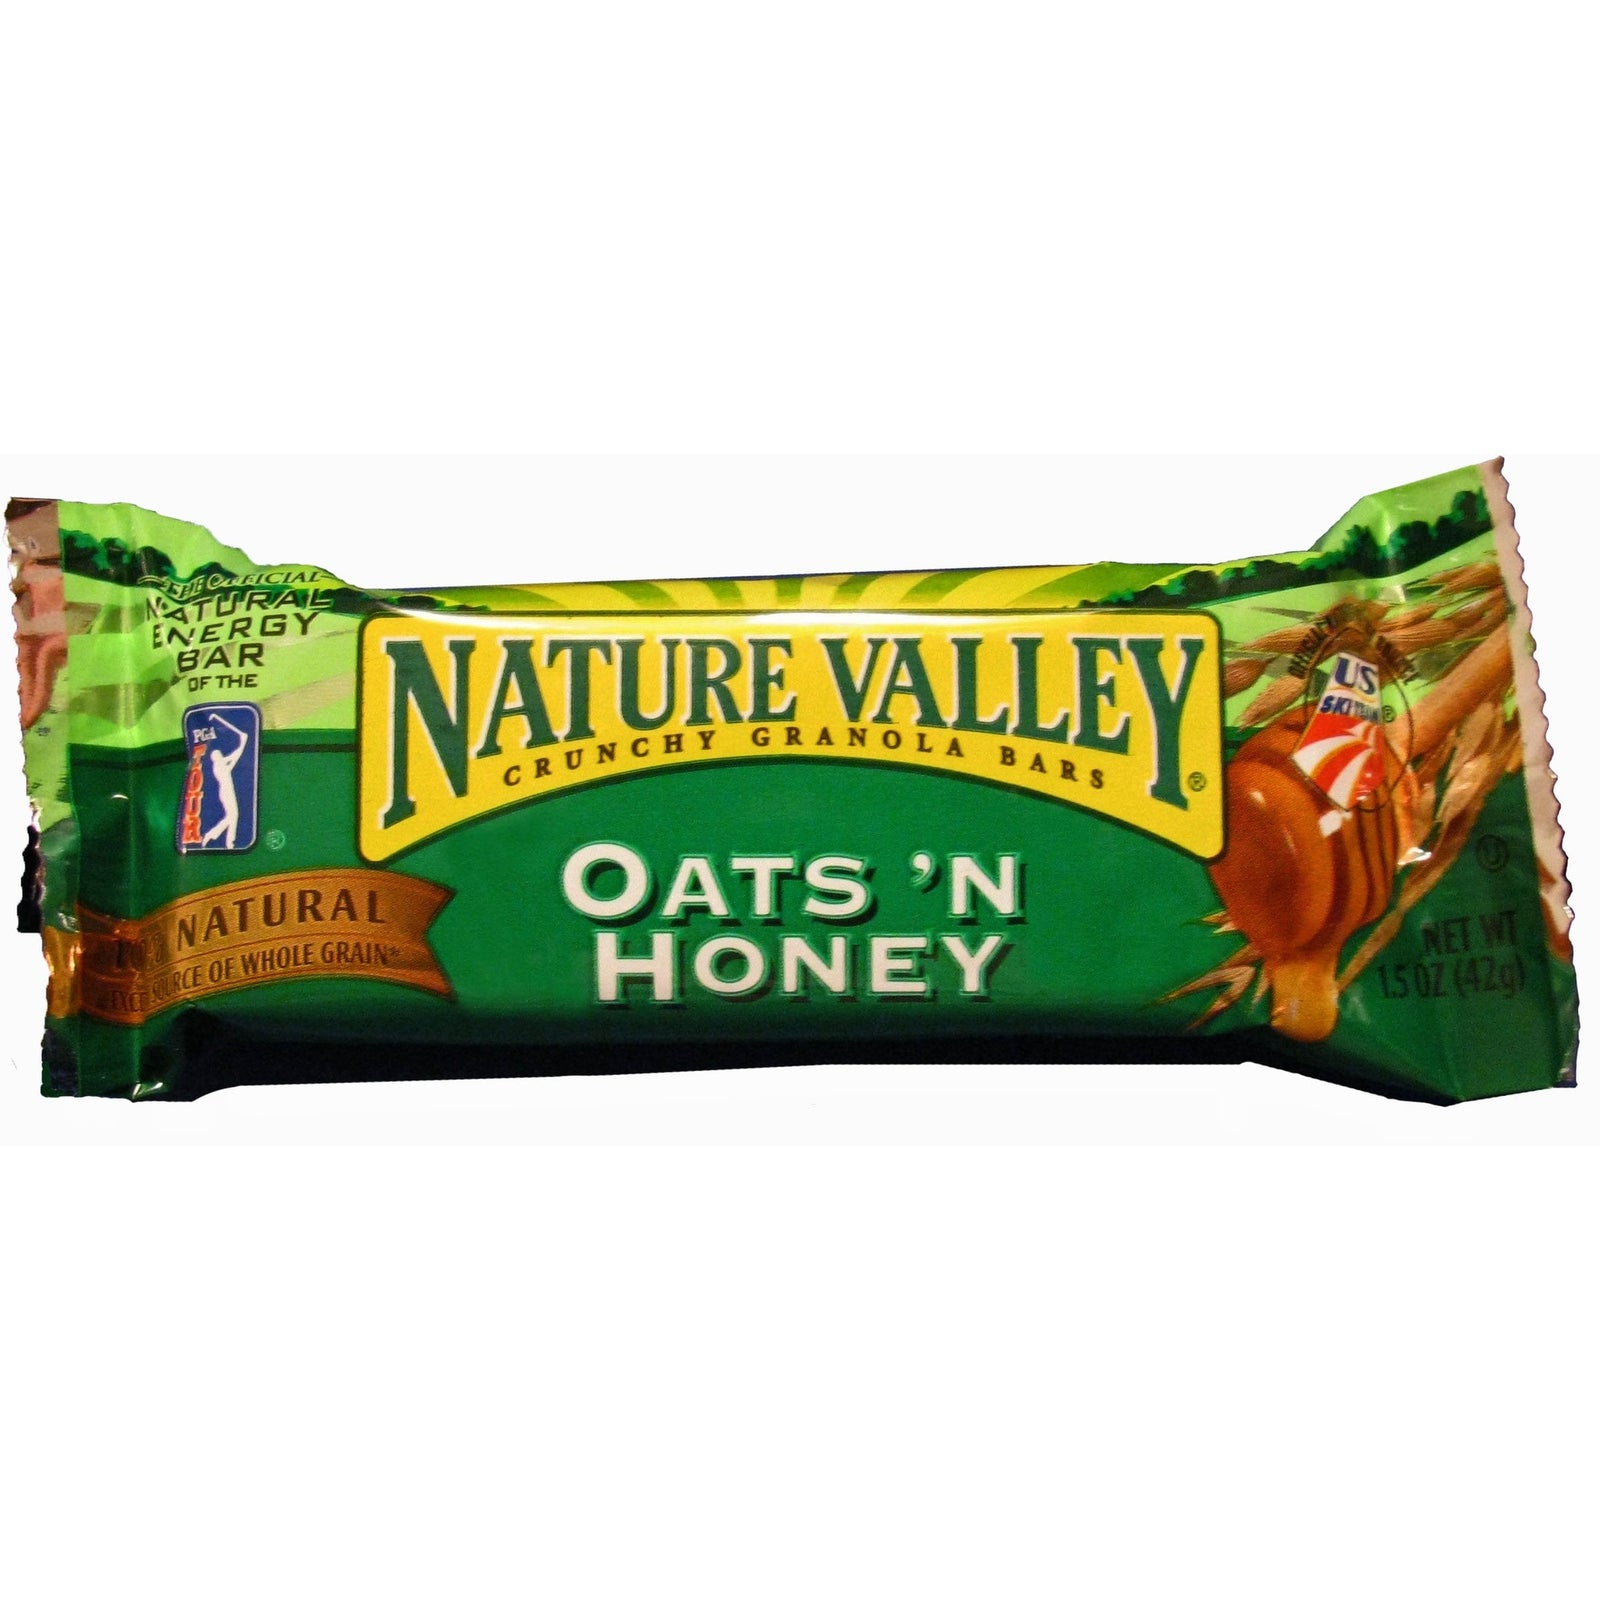 Nature Valley Crunchy Granola Bars - Oats 'N Honey